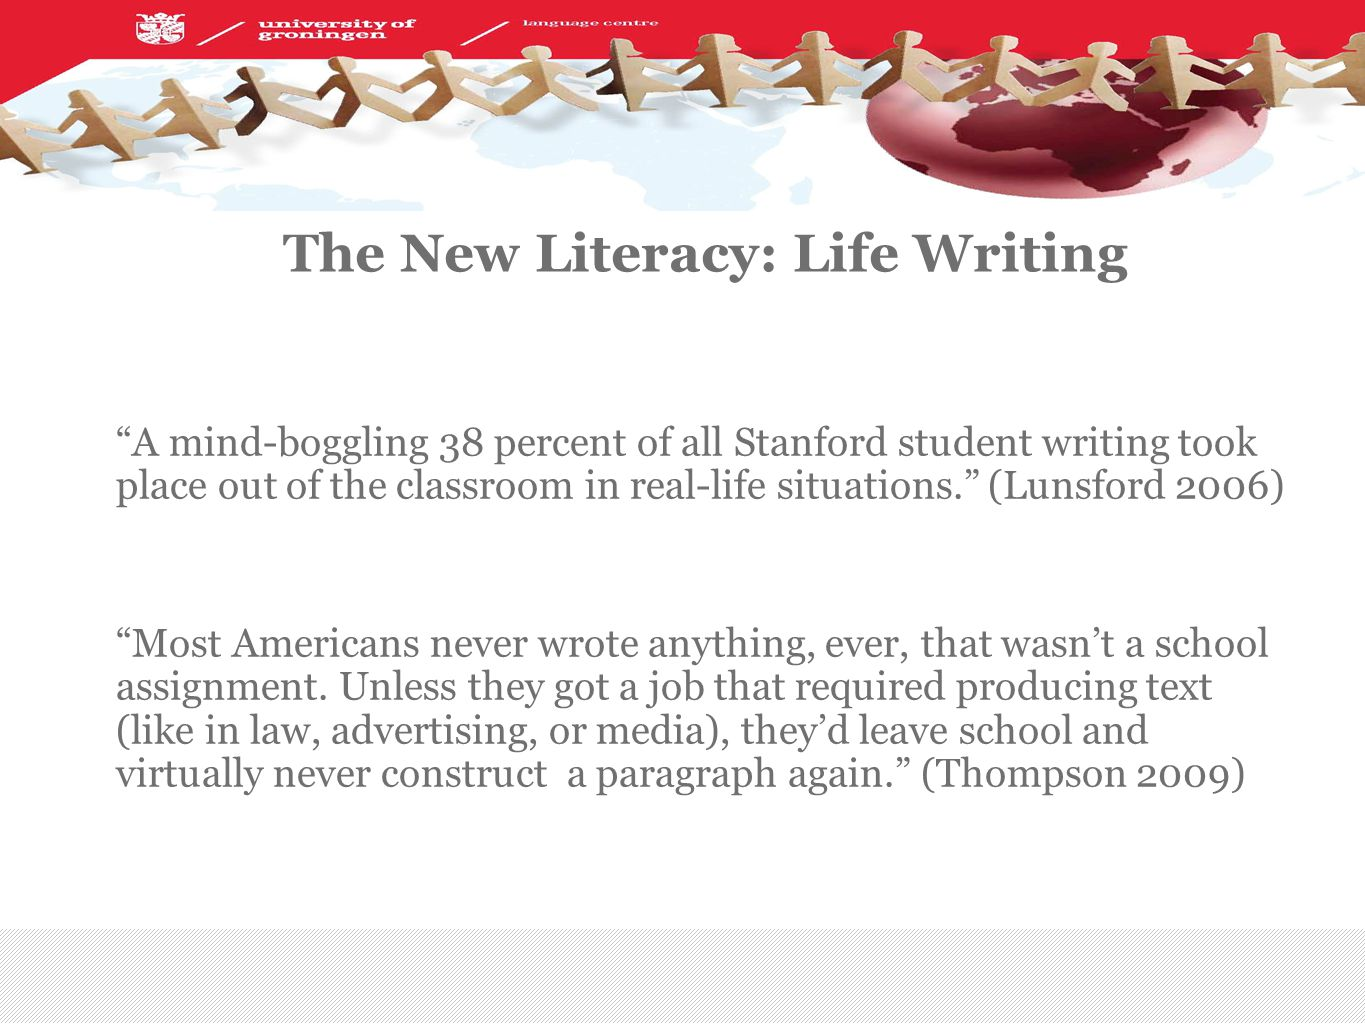 | The New Literacy: Life Writing A mind-boggling 38 percent of all Stanford student writing took place out of the classroom in real-life situations. (Lunsford 2006) Most Americans never wrote anything, ever, that wasn't a school assignment.